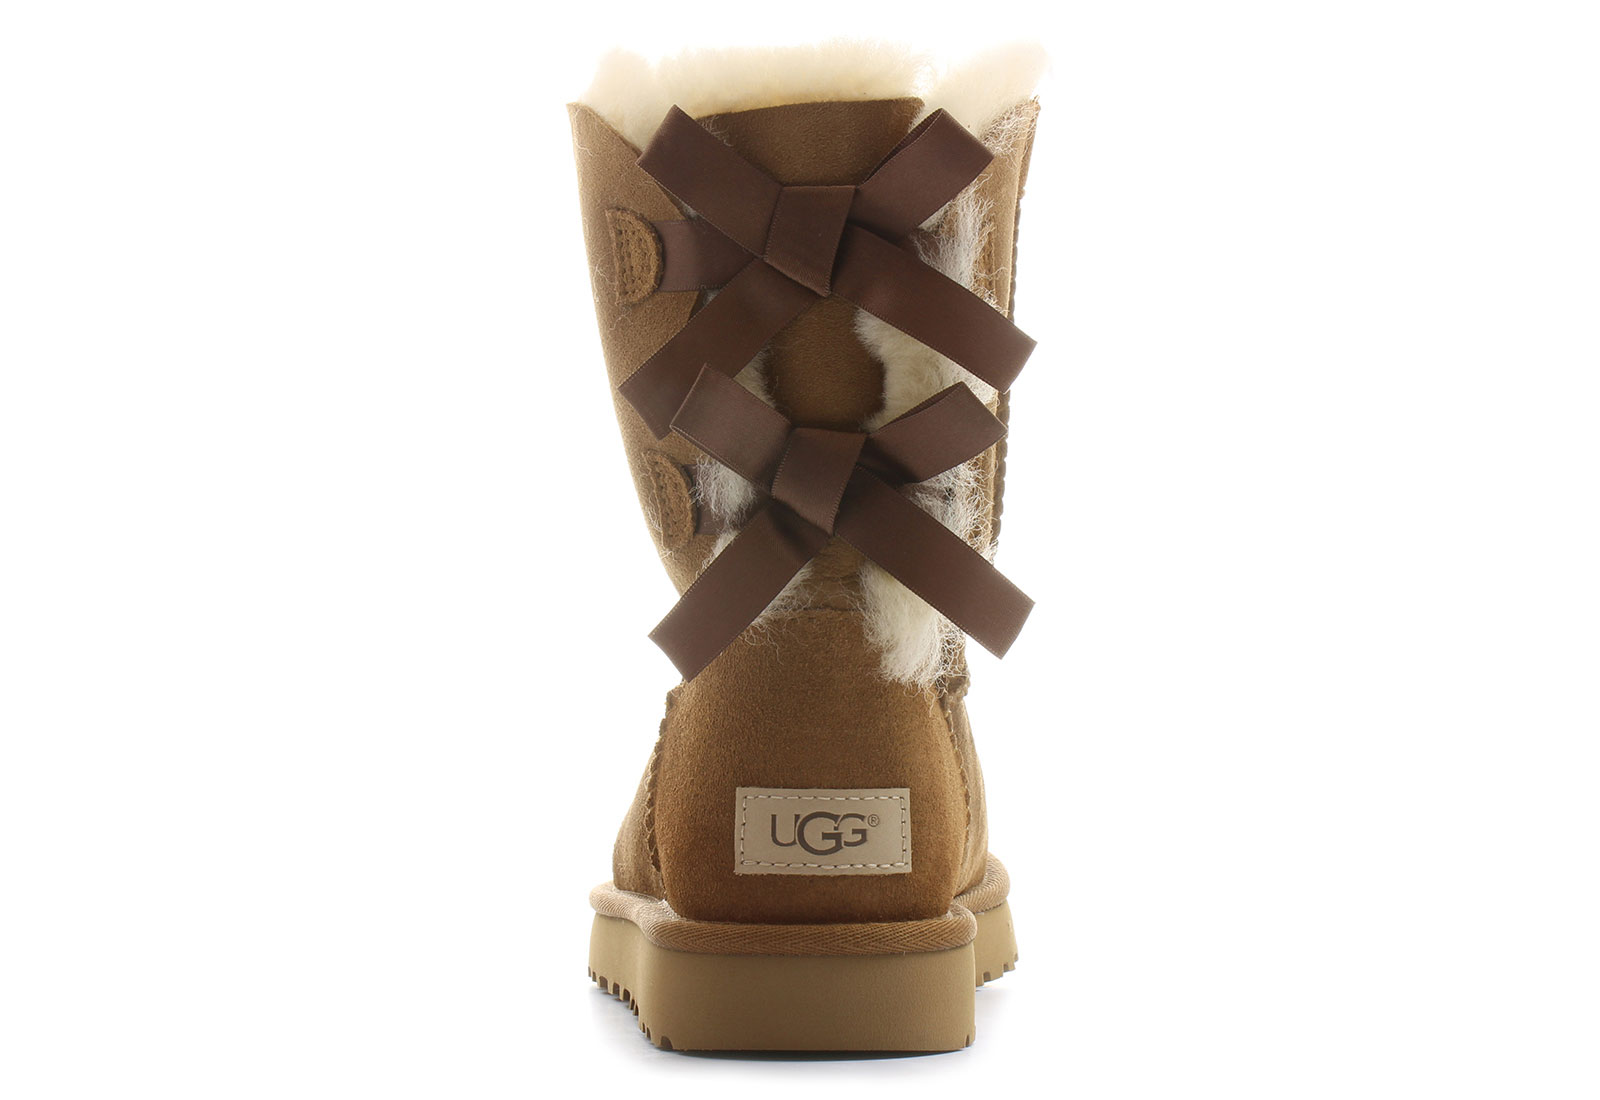 Ugg Boots Big Kids Bailey Bow Blue Sky Uk 4 Division Of